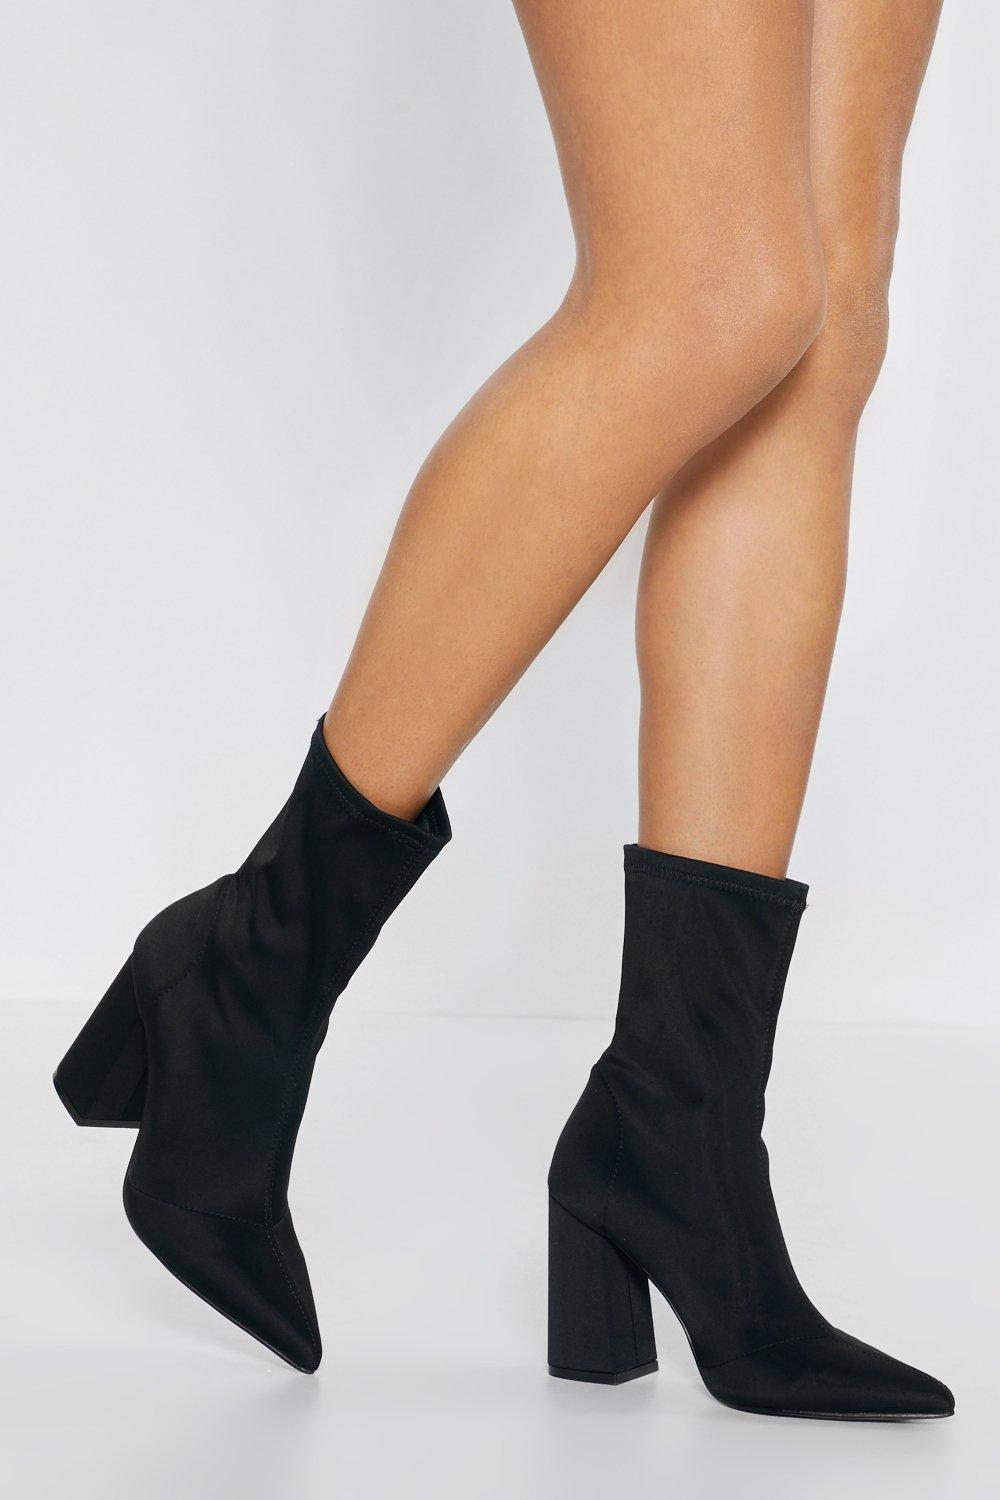 896d7aa54ee1 Hover to zoom · Womens Black Around the Sock Heeled Boots